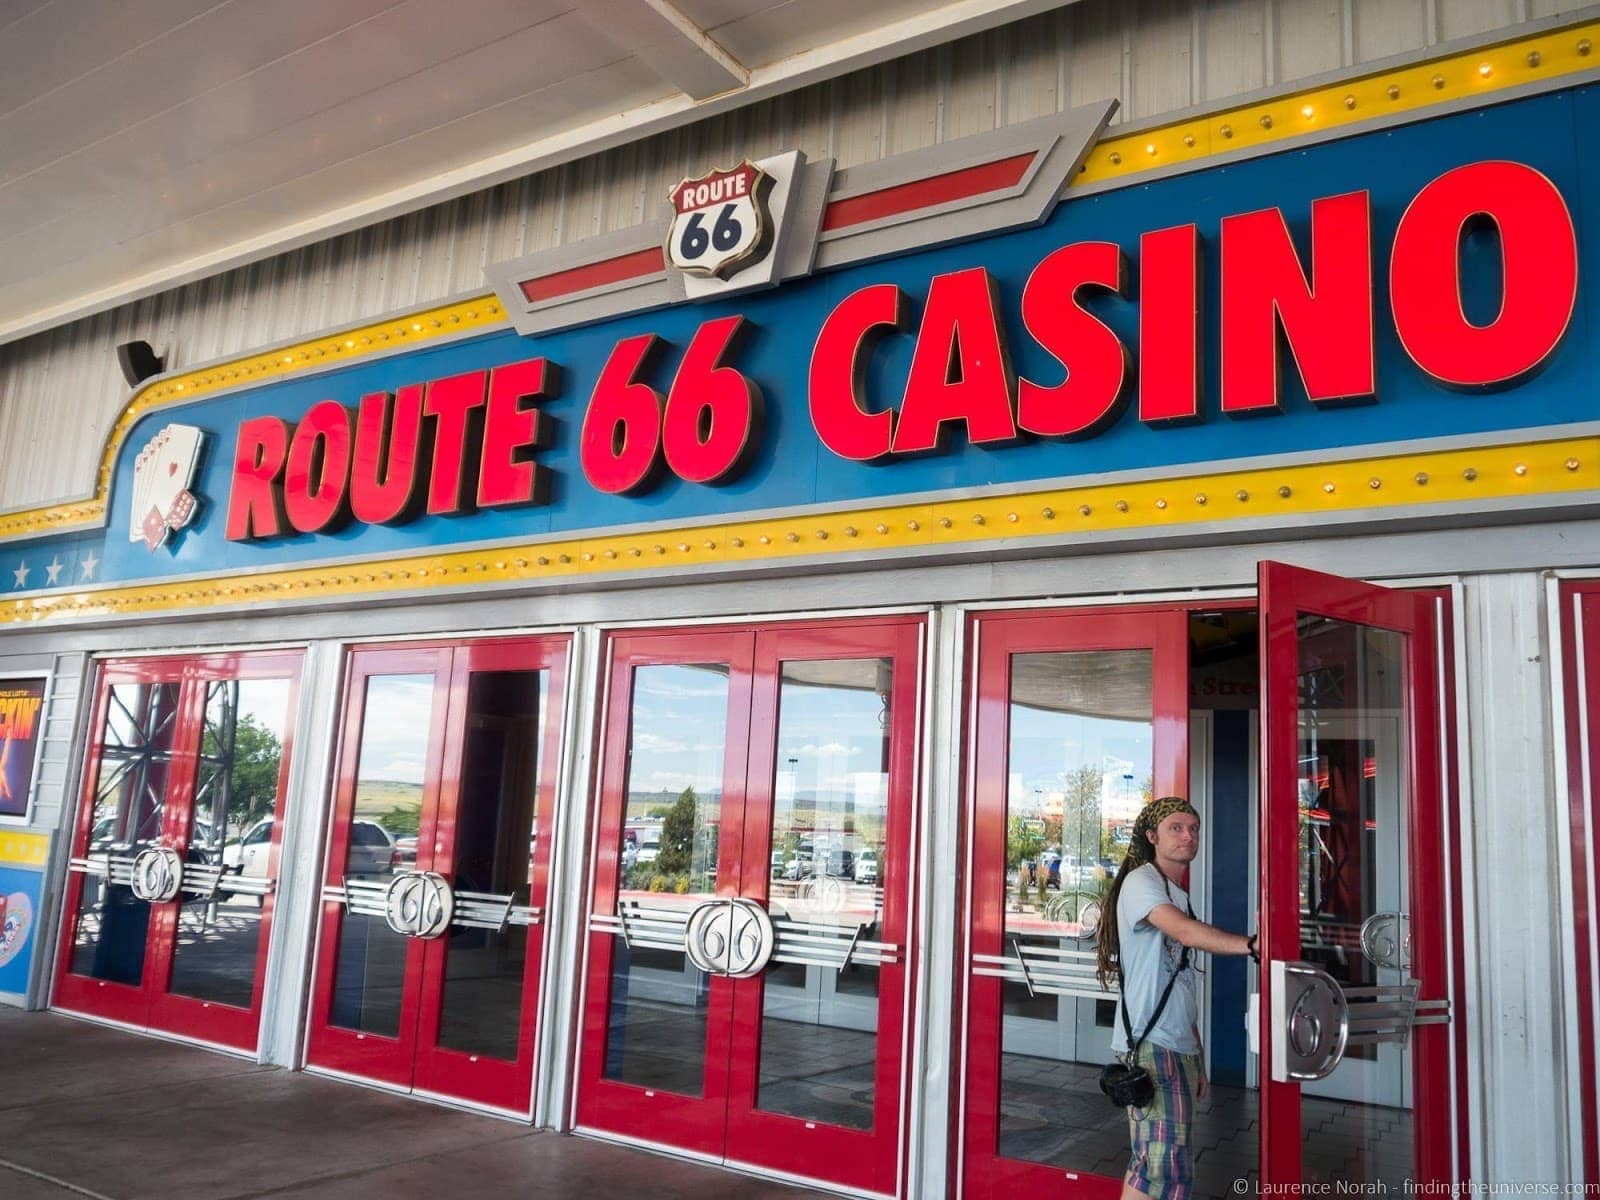 Route 66 Casino New Mexico